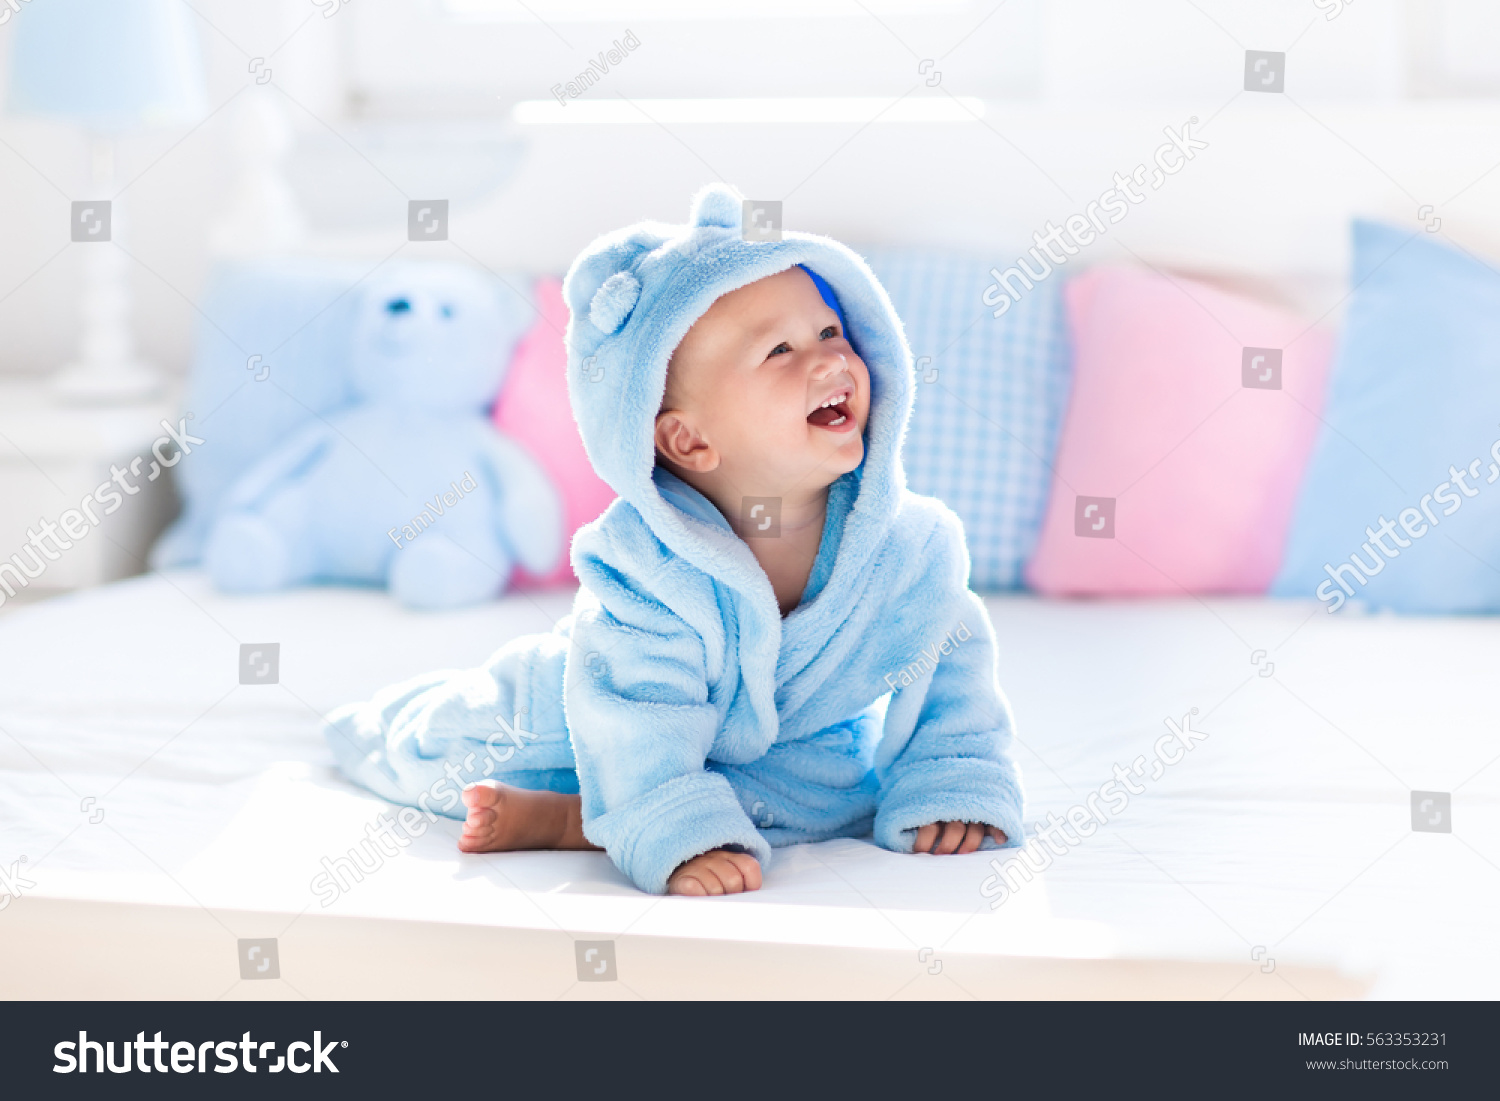 Cute Happy Laughing Baby Boy Soft Stock Photo & Image (Royalty-Free ...